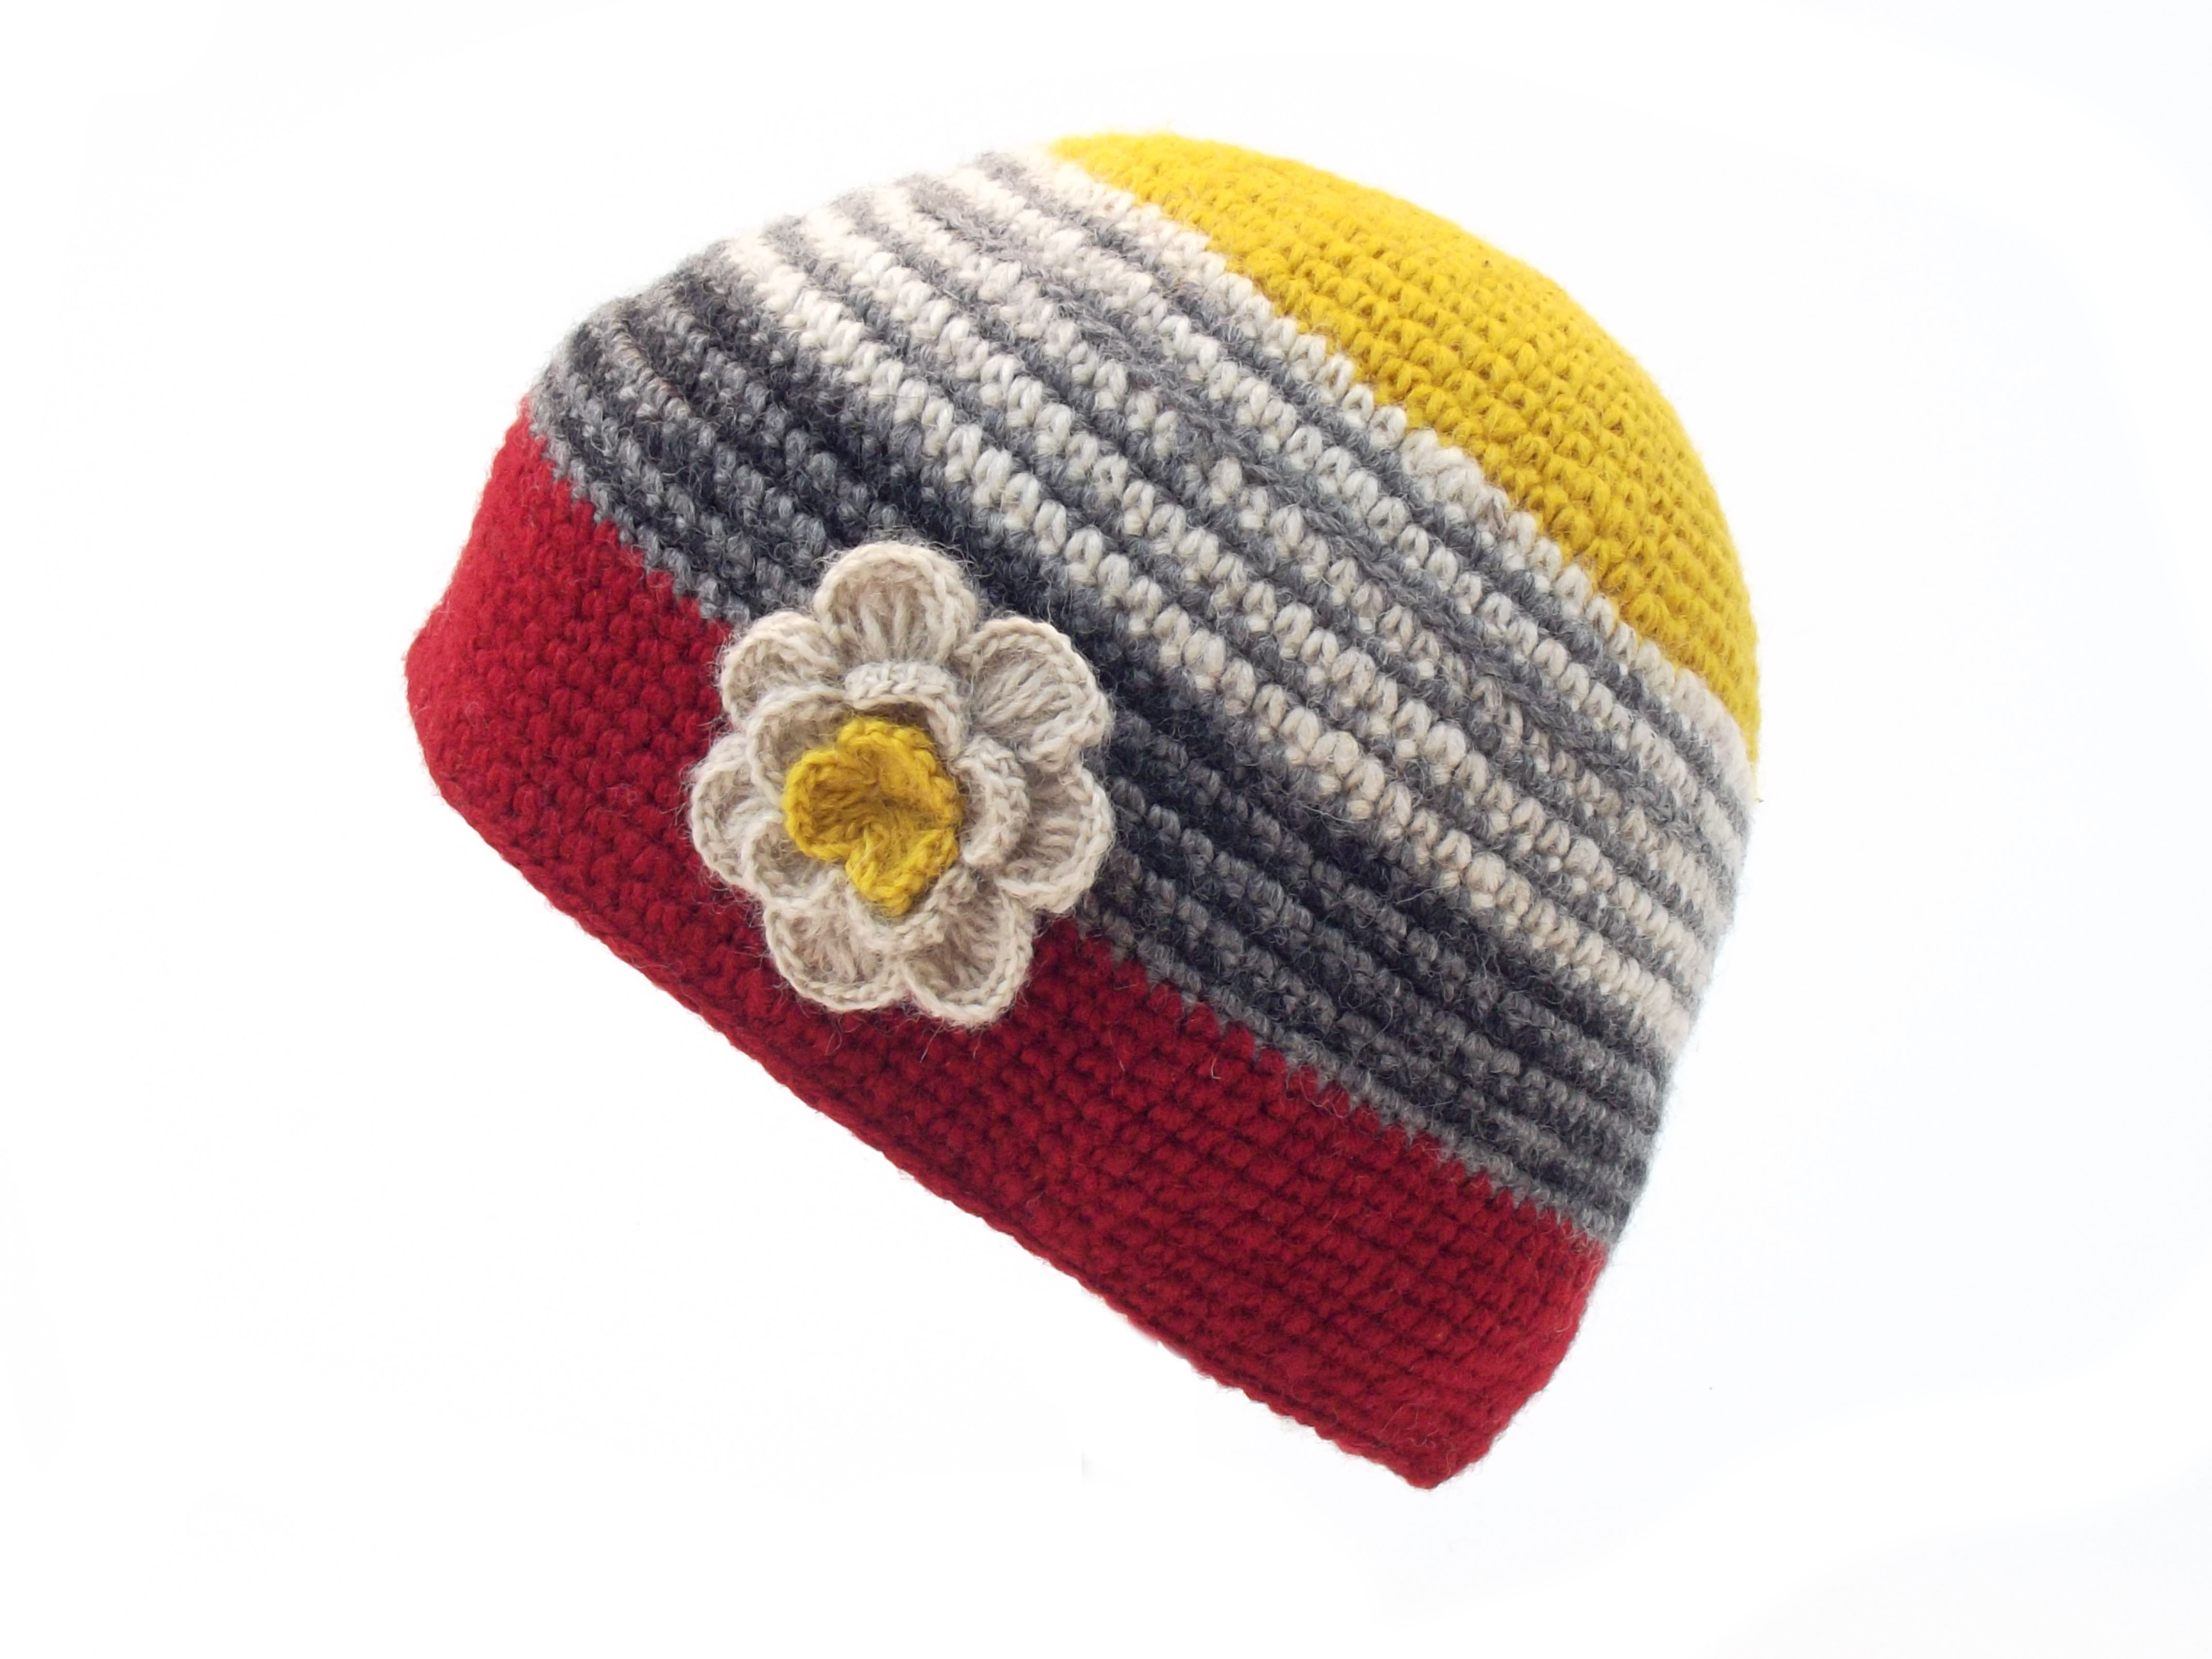 Crochet Cap with Flower Corsage Red Yellow 100% Wool